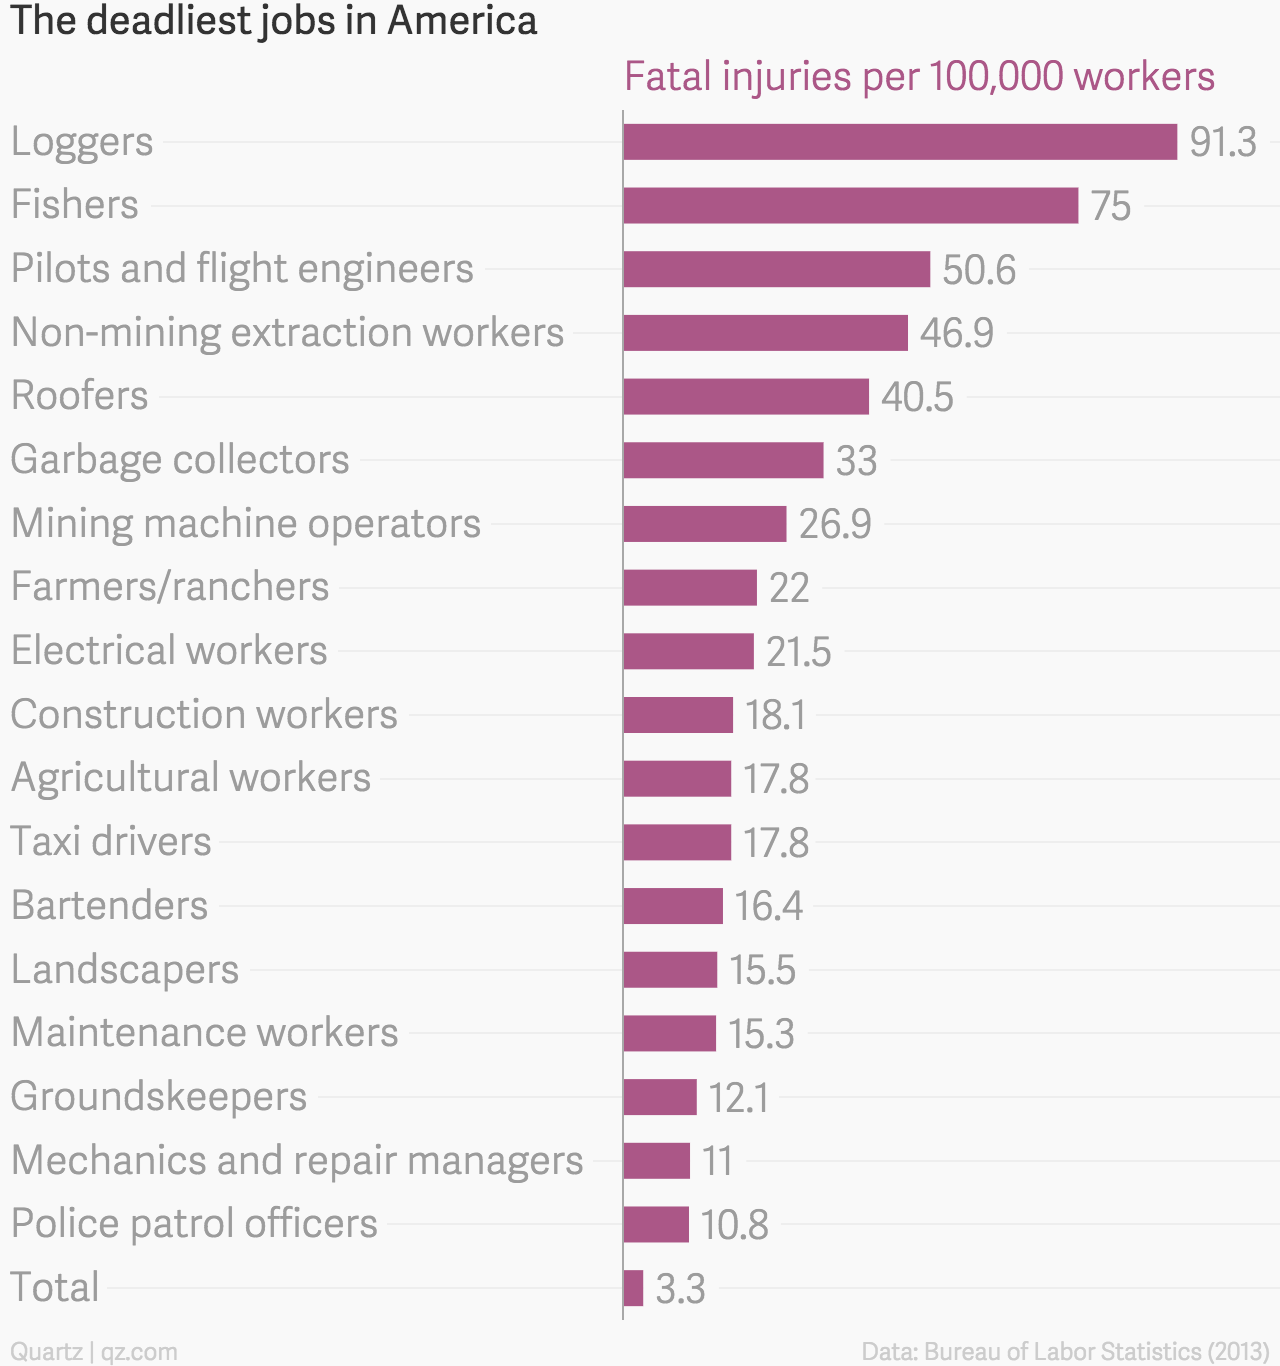 Garbage collectors are more likely to die on the job than ...